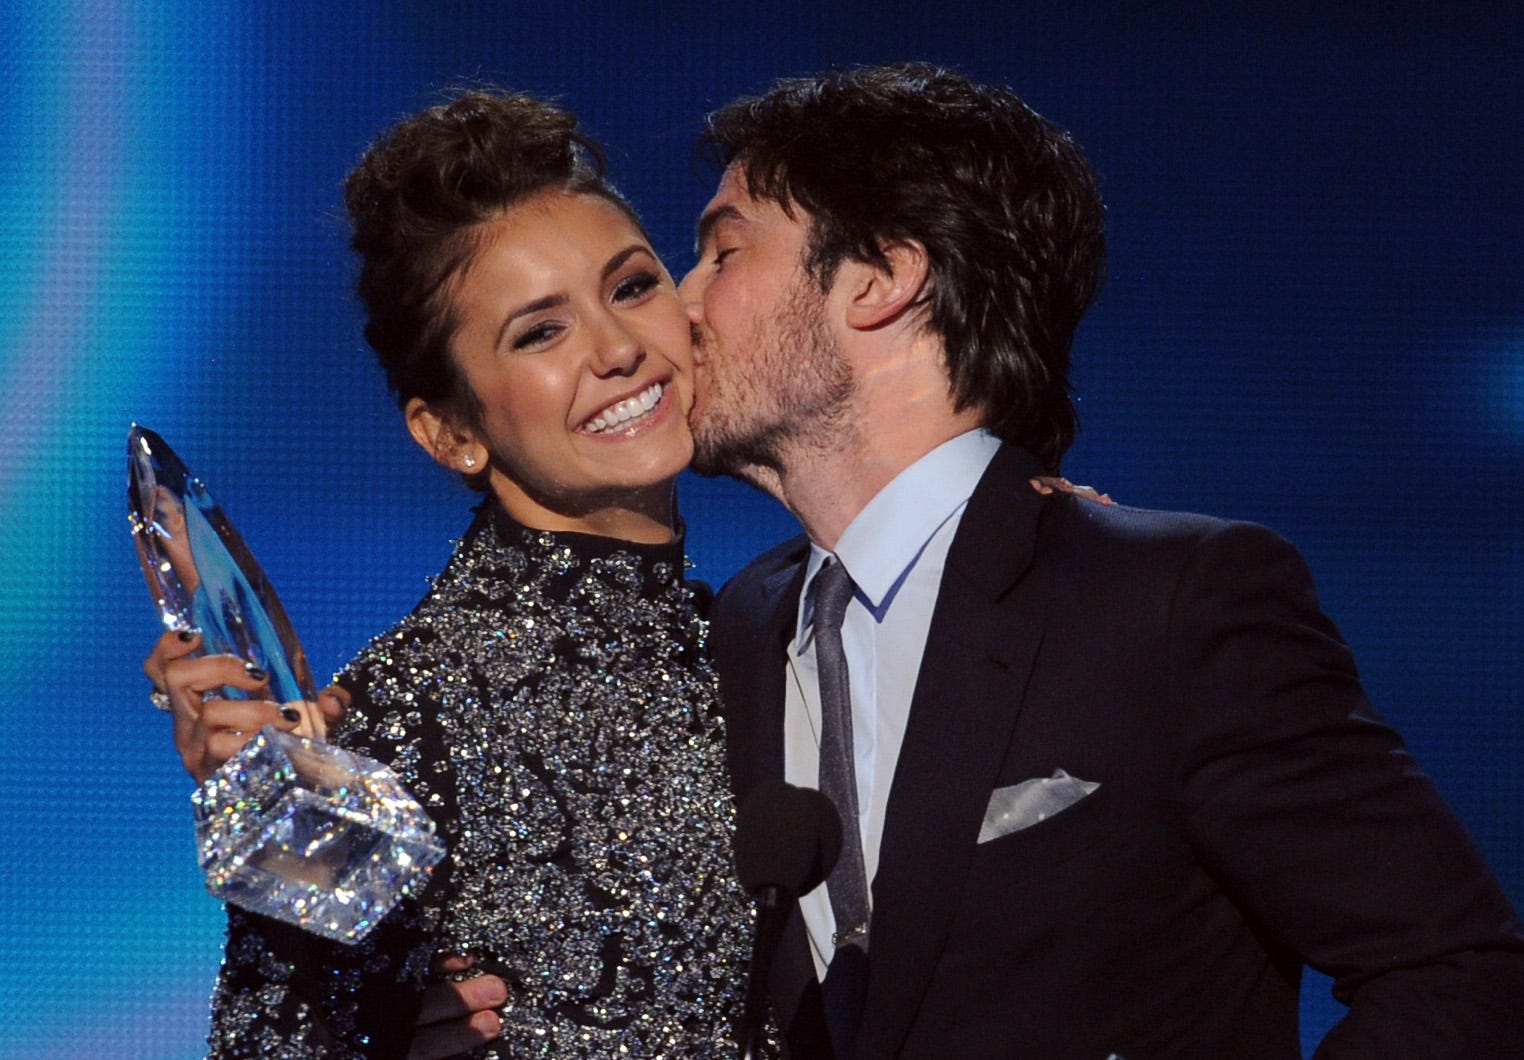 Nina dating Ian